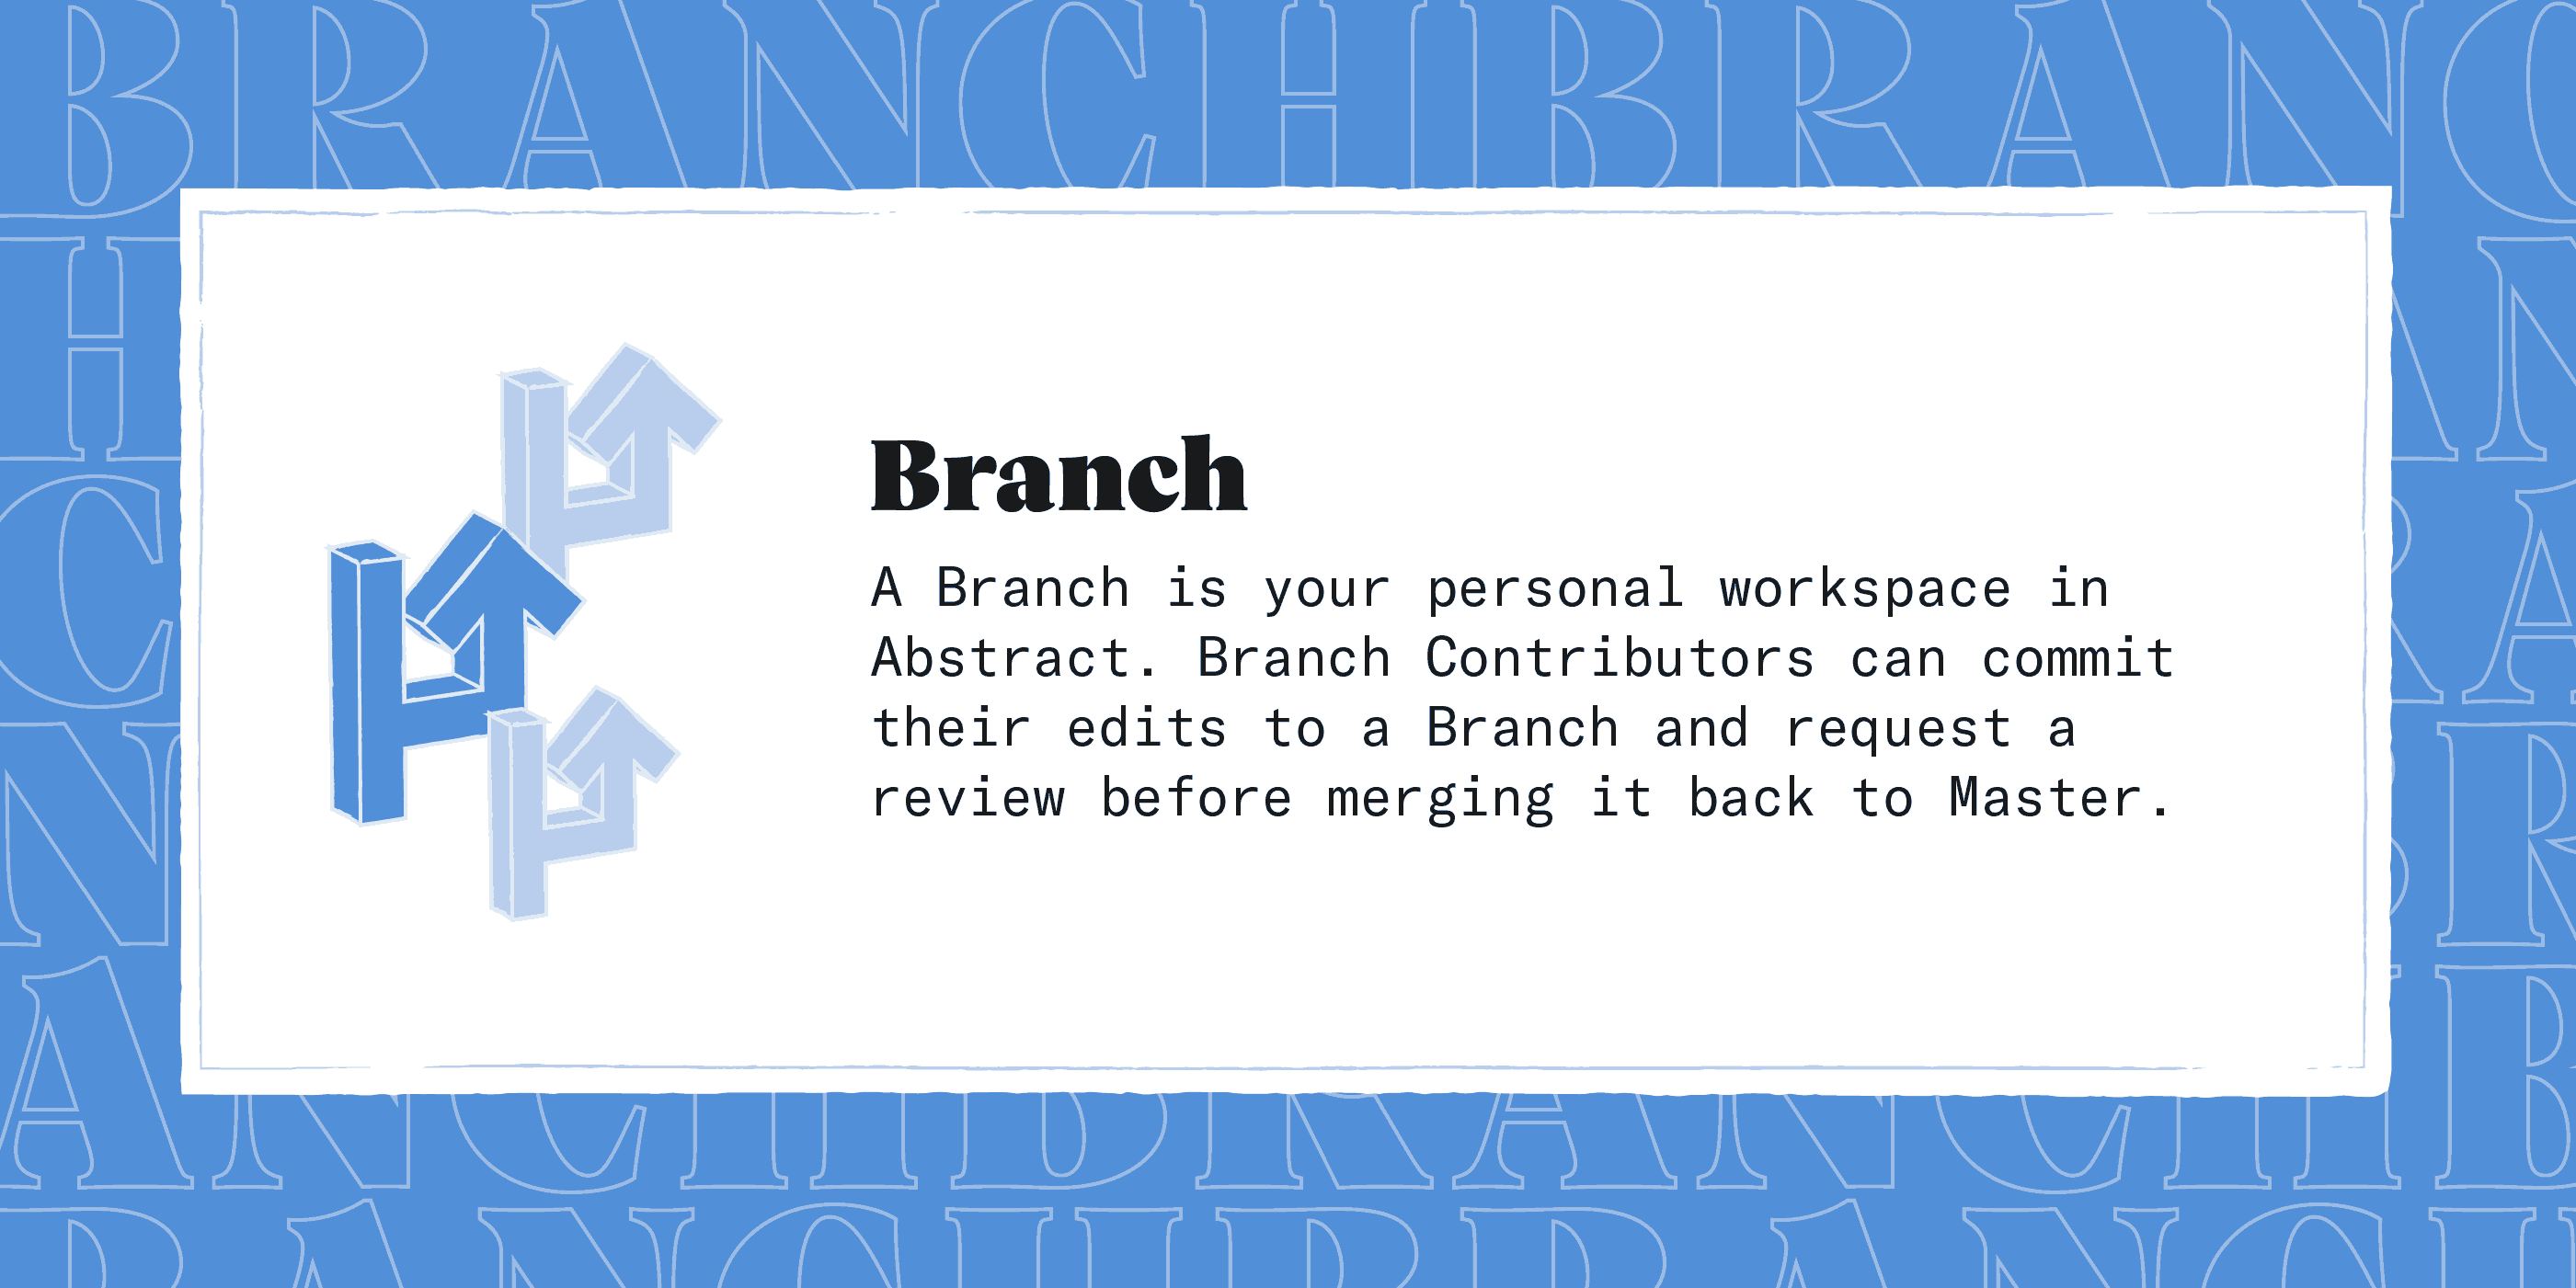 A Branch is your personal workspace in Abstract. Branch Contributors can commit their edits to a Branch and request a review before merging it back to Master.